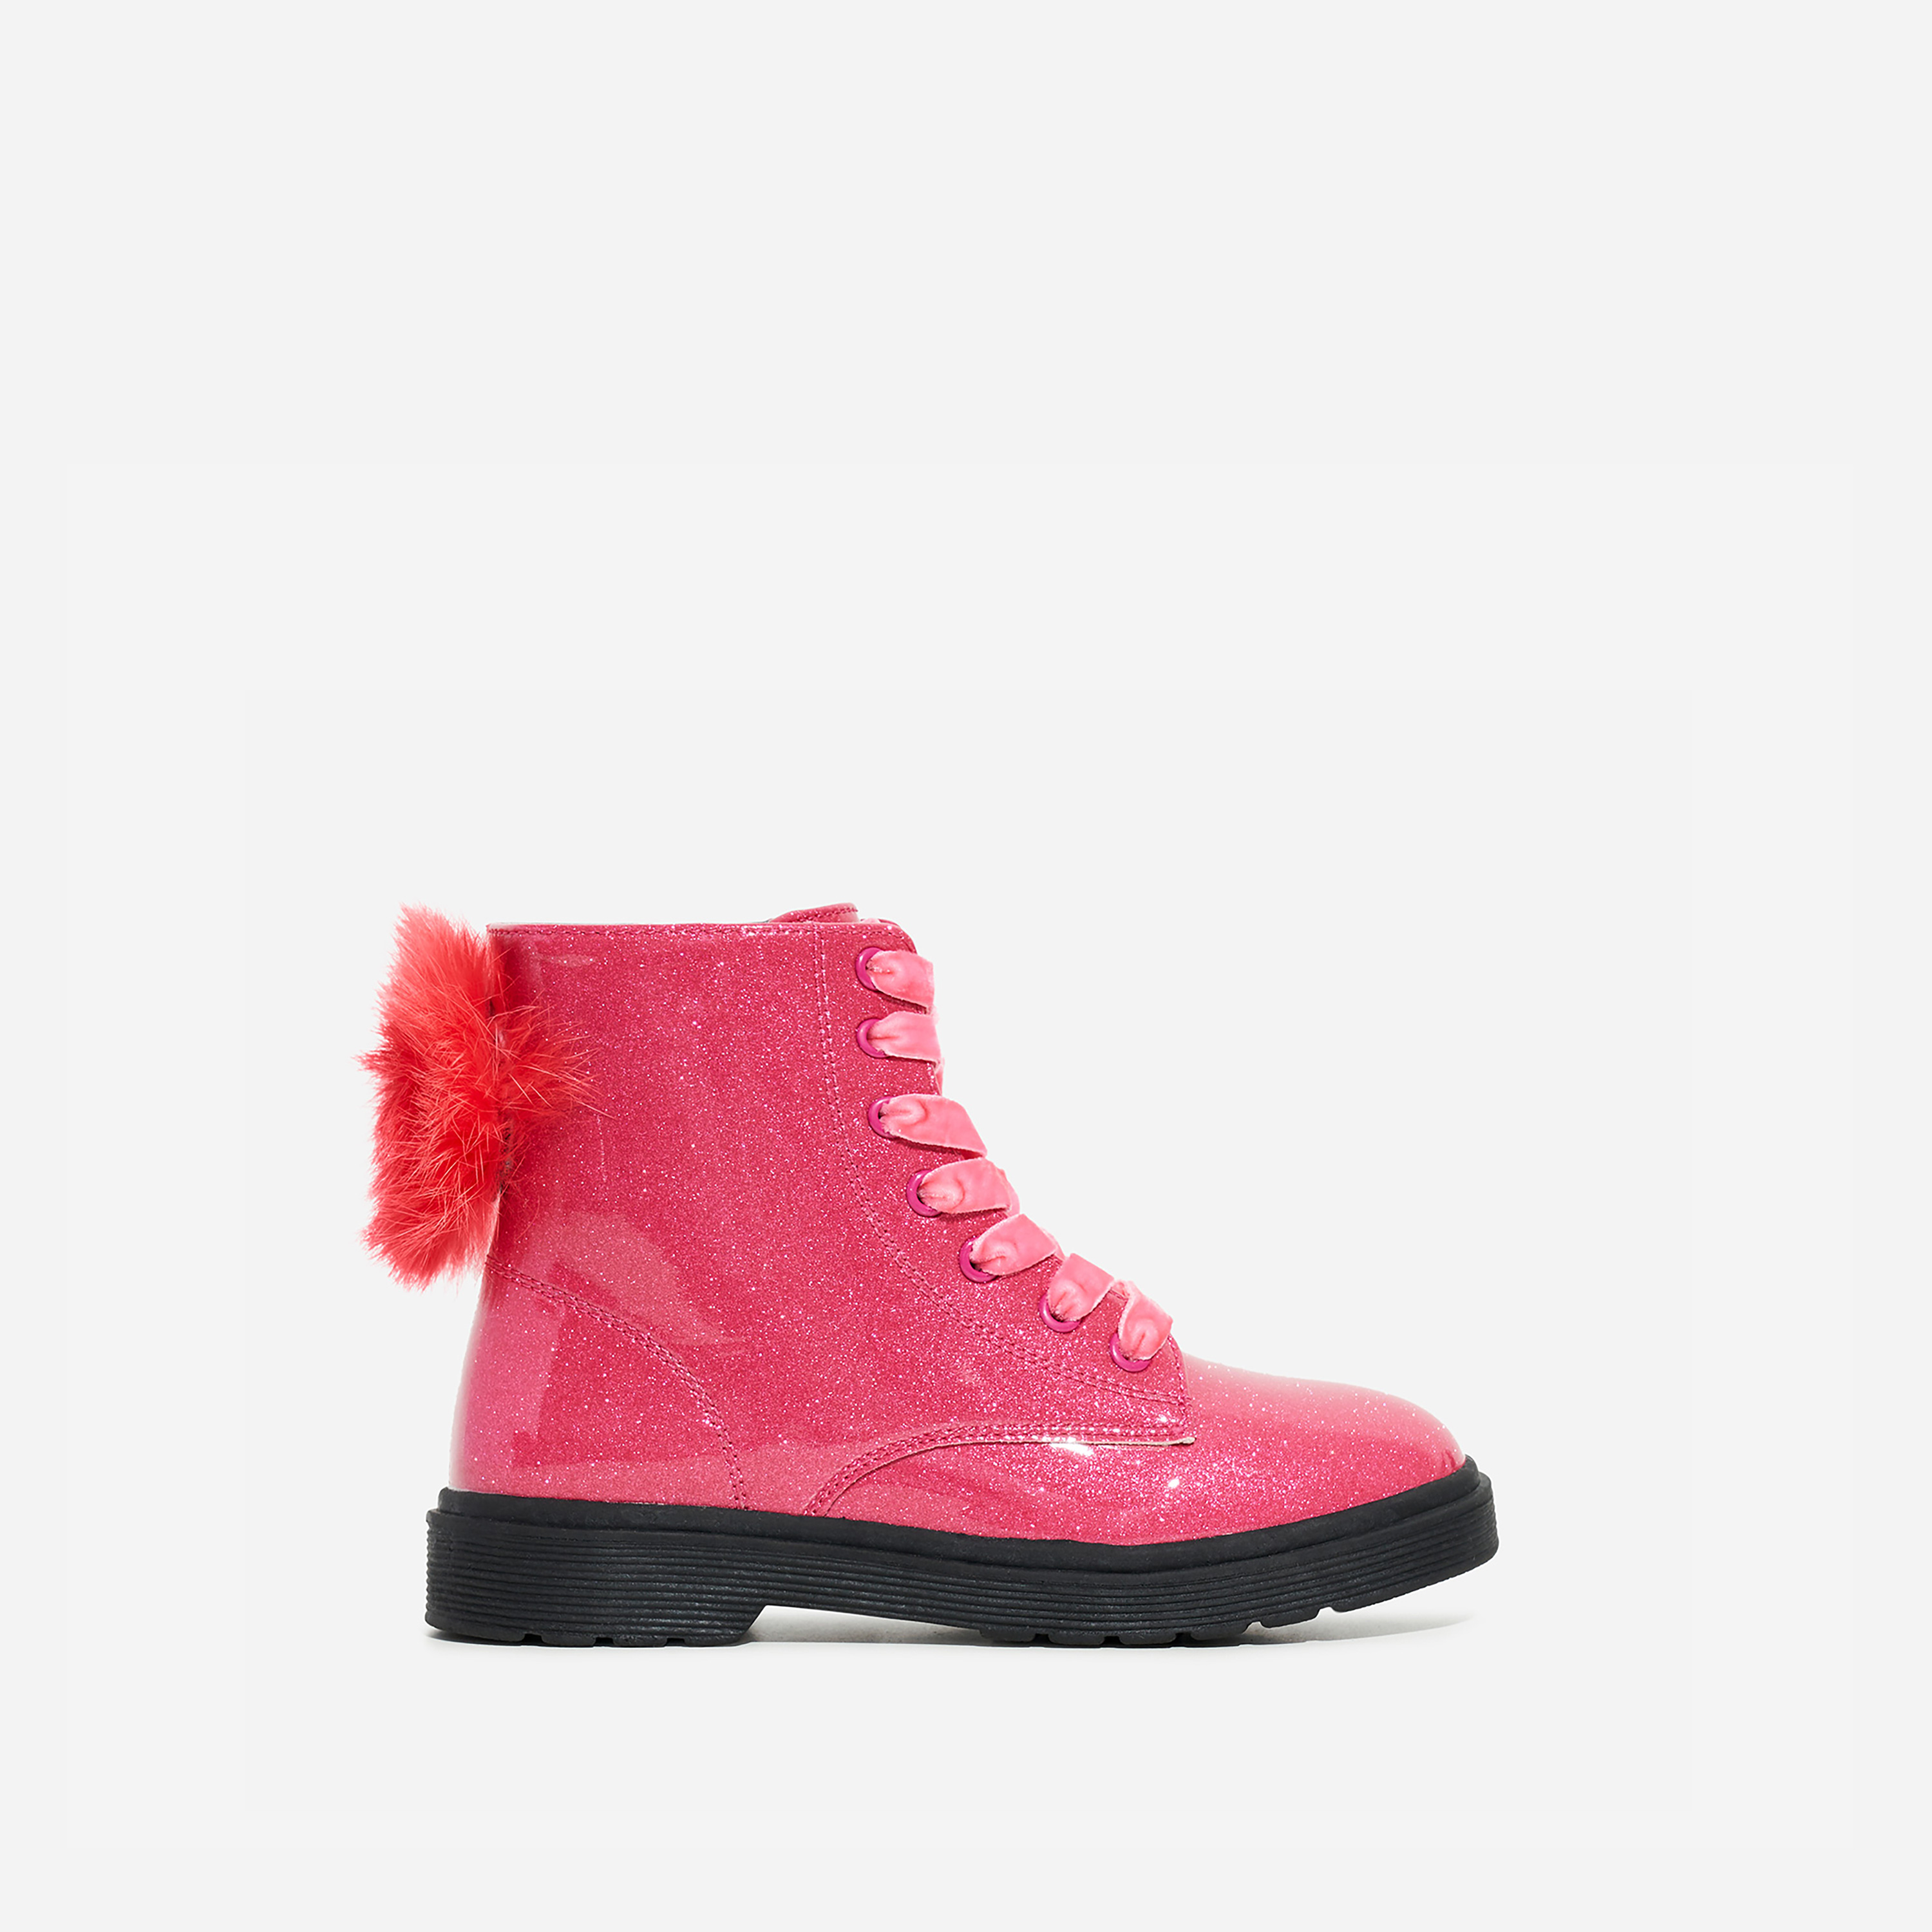 Pom Girl's Faux Feather Detail Lace Up Ankle Biker Boot In Pink Glitter Patent